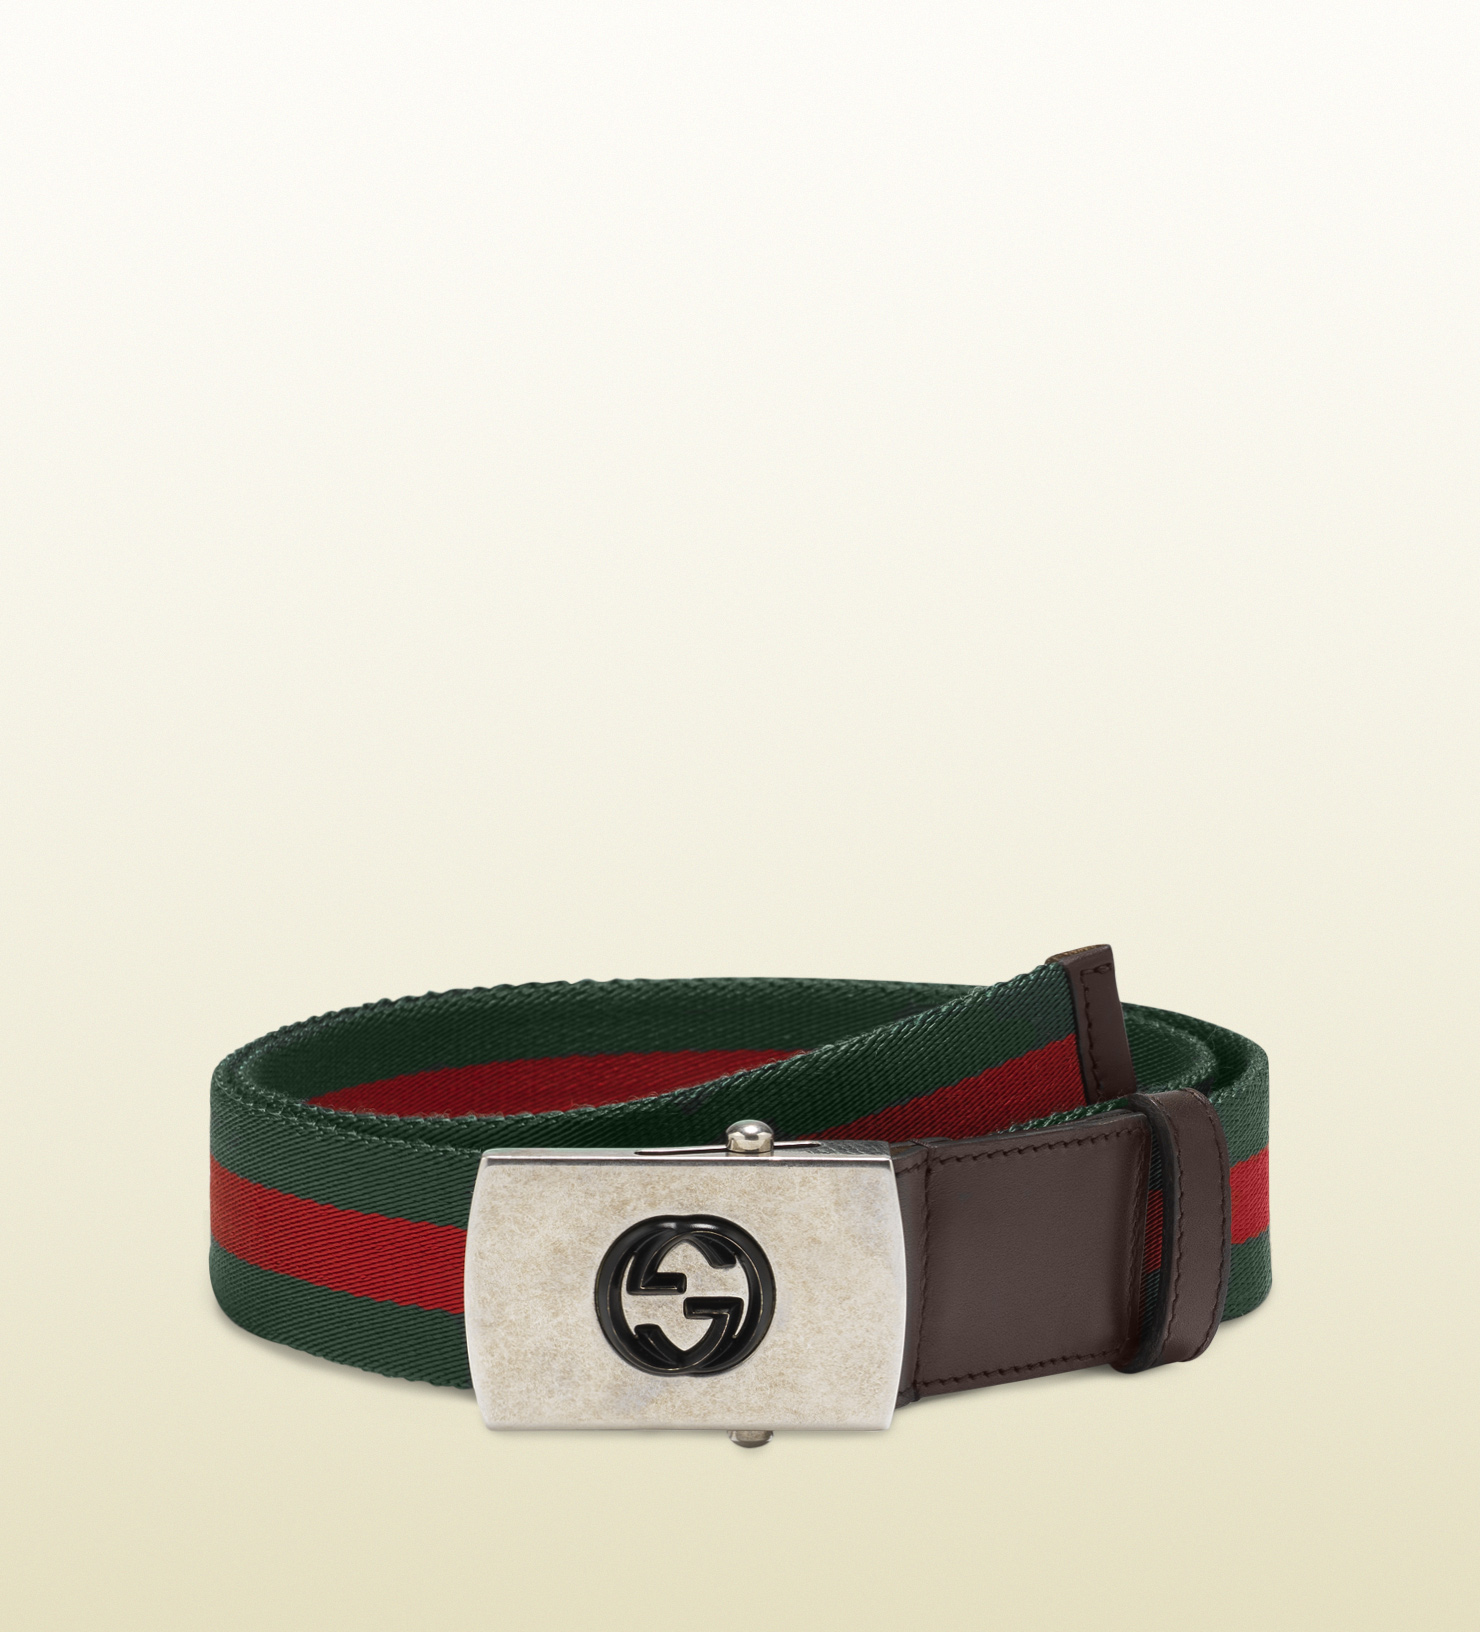 5b09578b7 Gucci Nylon Web Belt with Plaque Buckle in Green for Men - Lyst